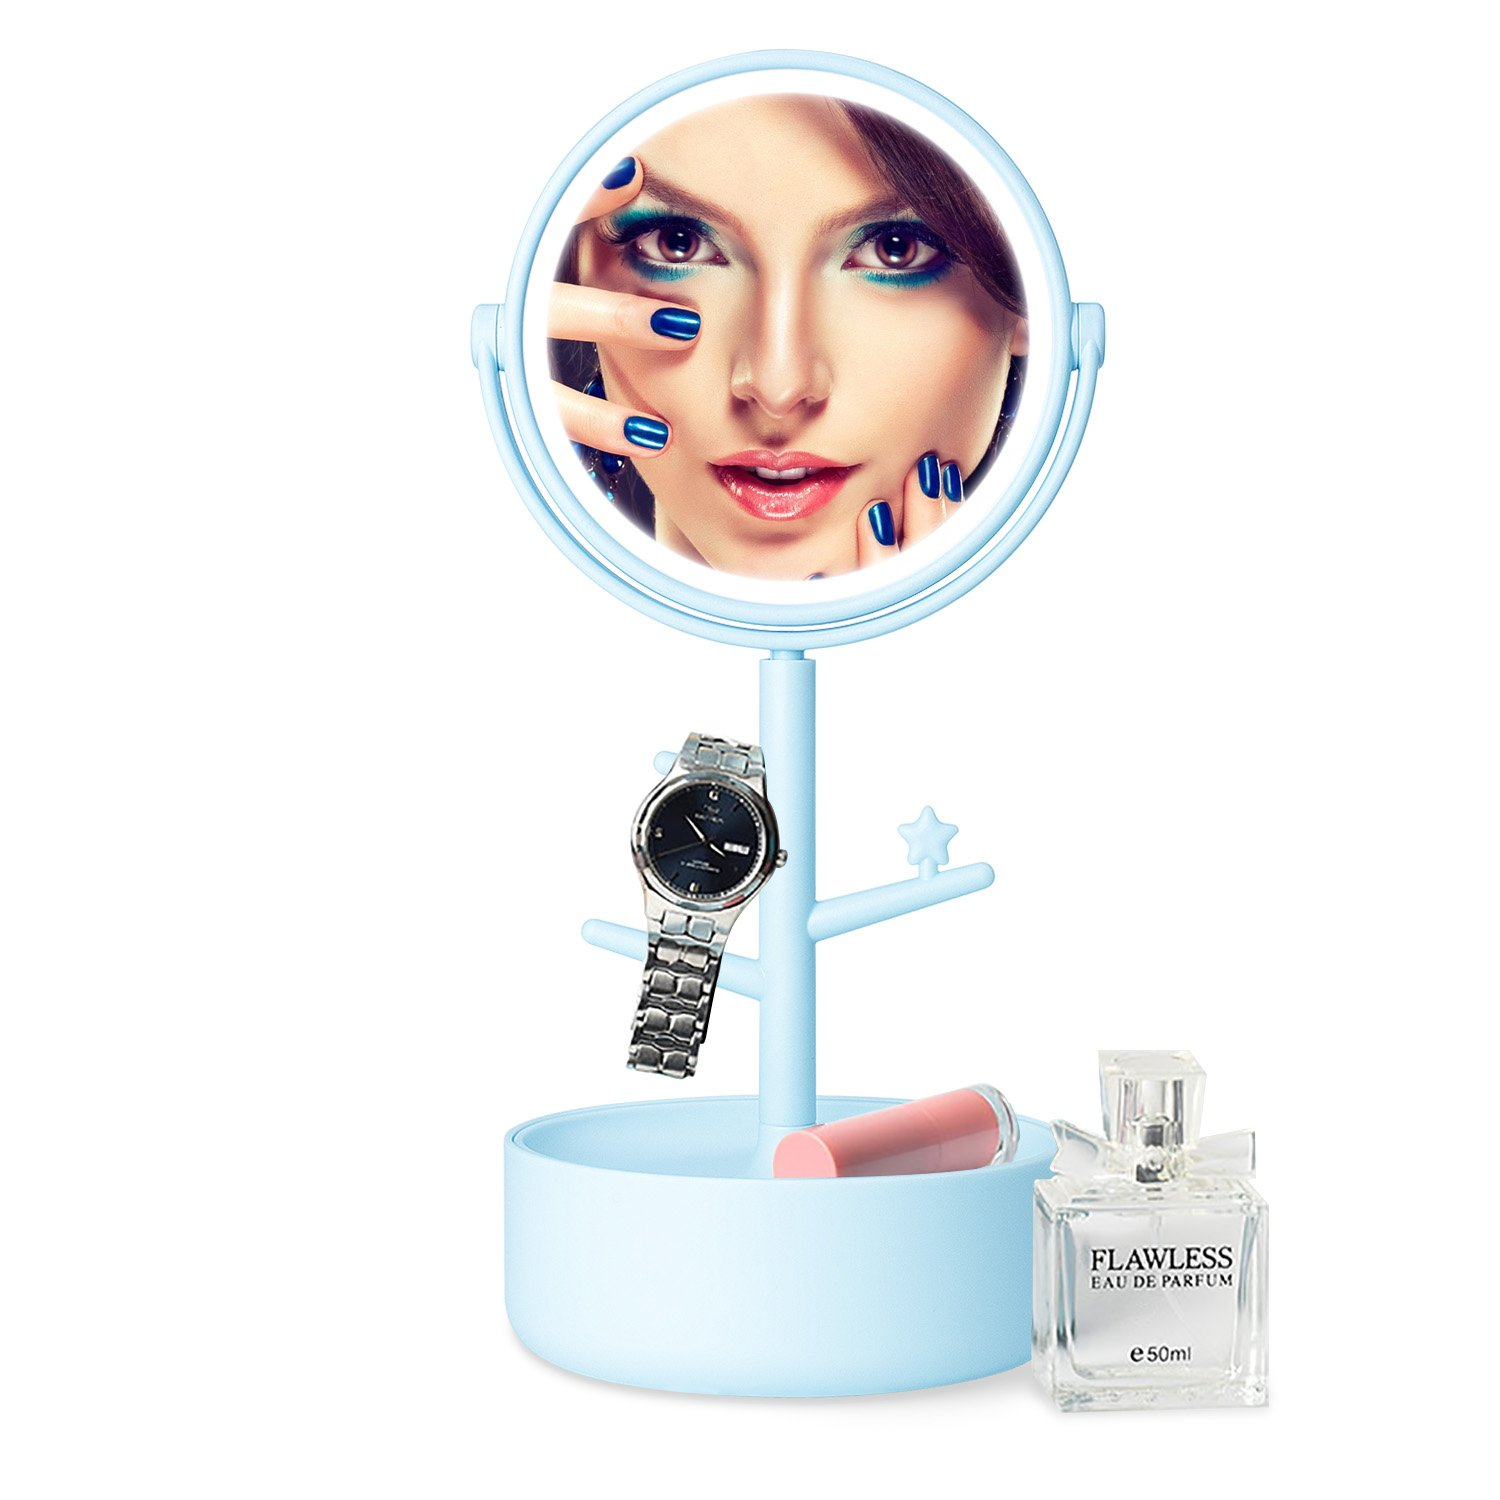 FAMLOVE LED Lighted Makeup Mirror/Circle Touch Screen Vanity Mirror, Bathroom Countertop Cosmetic Mirrors with Organizer, Batteries or USB Charging, 360° Free Rotation - Blue